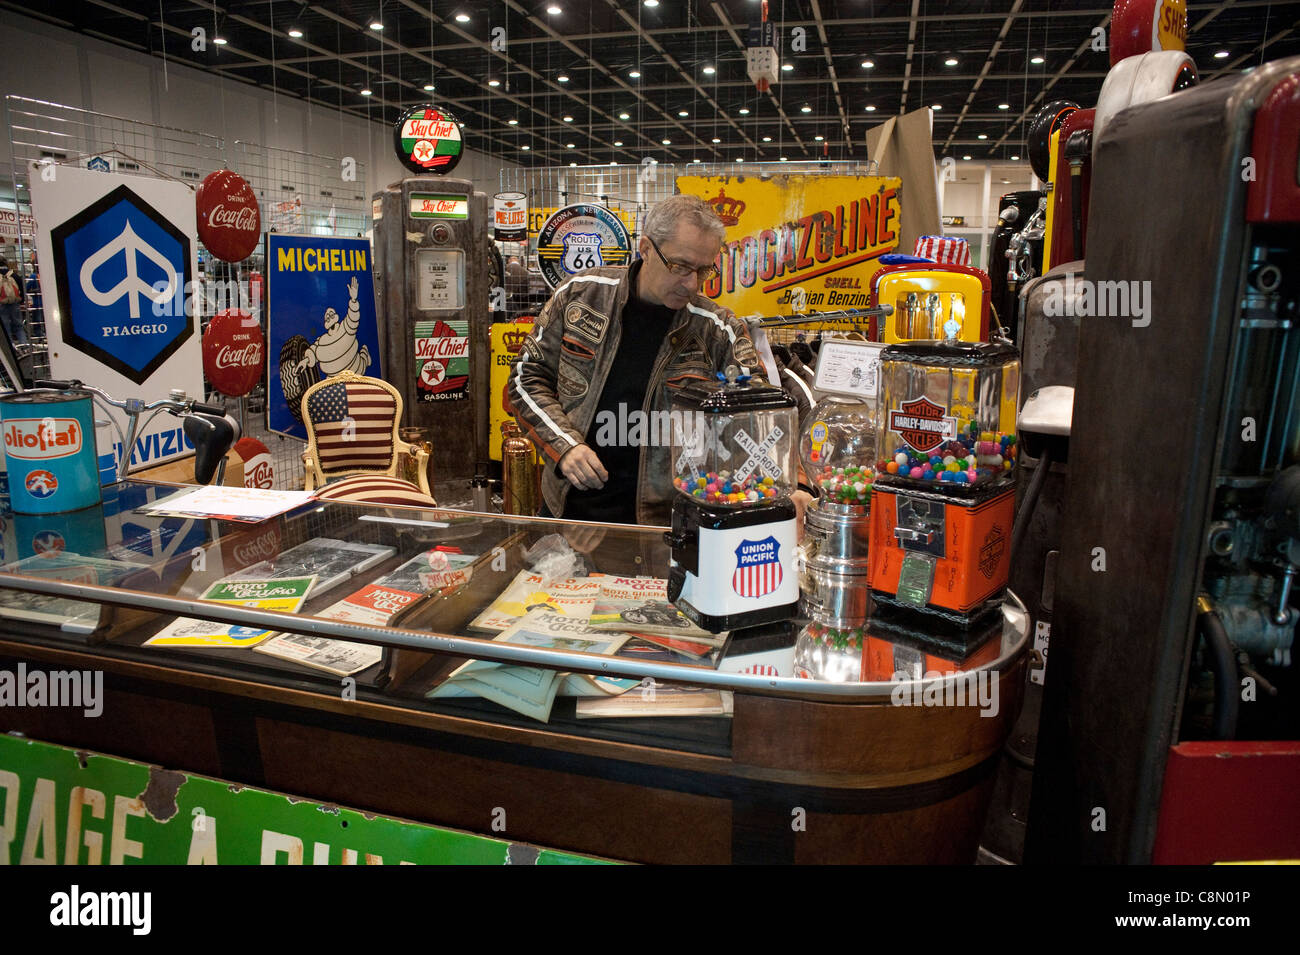 Distributors Stock Photos Amp Distributors Stock Images Alamy